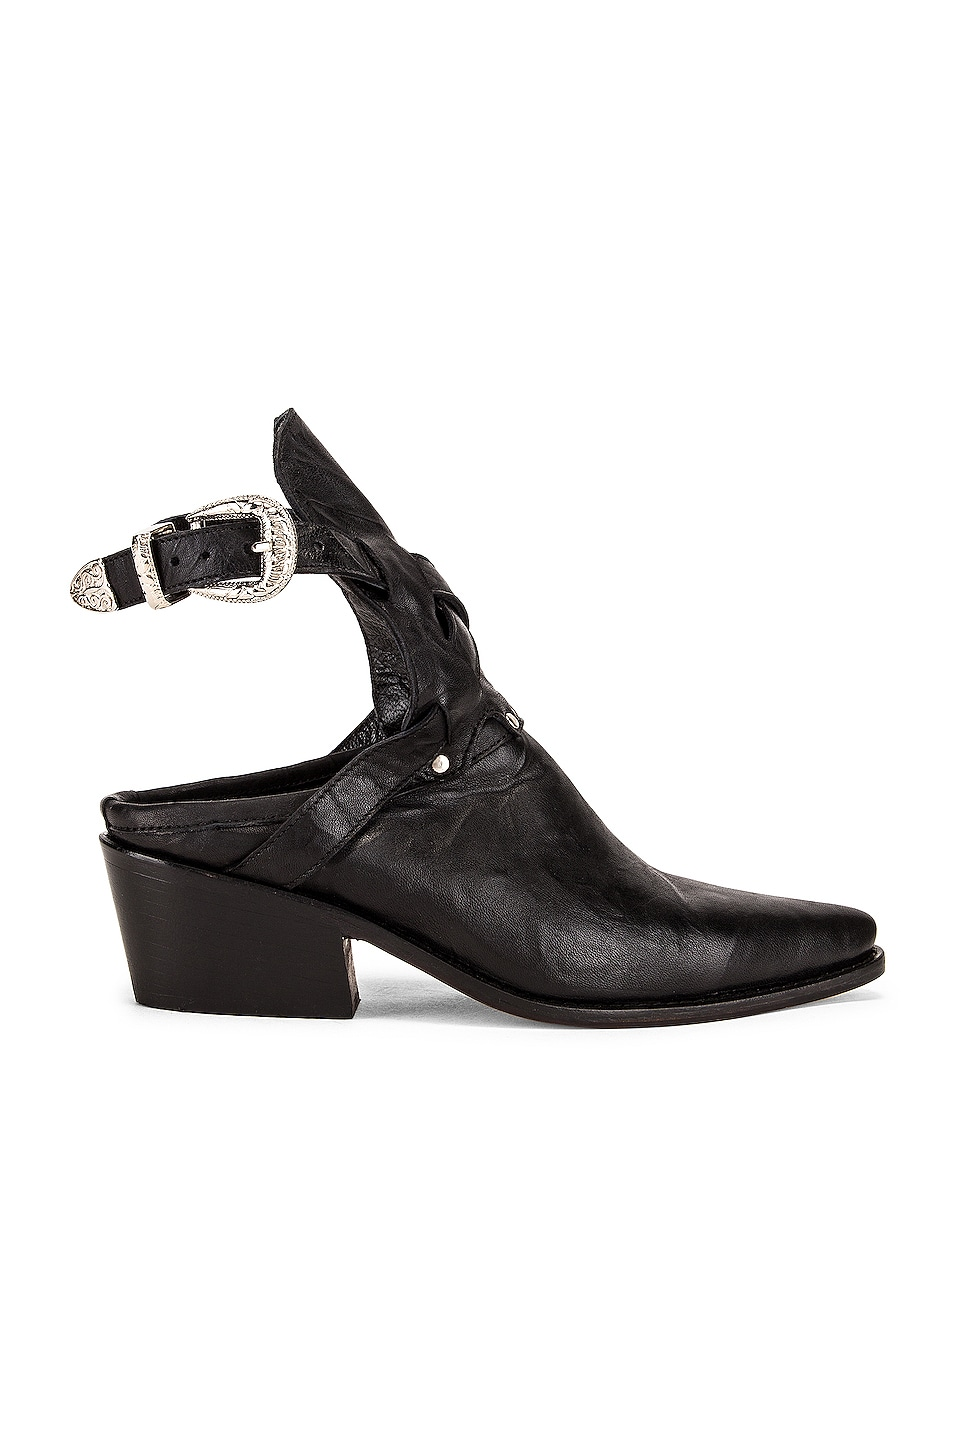 Image 1 of Zeynep Arcay Leather Cowboy Sobo Ankle Boots in Black